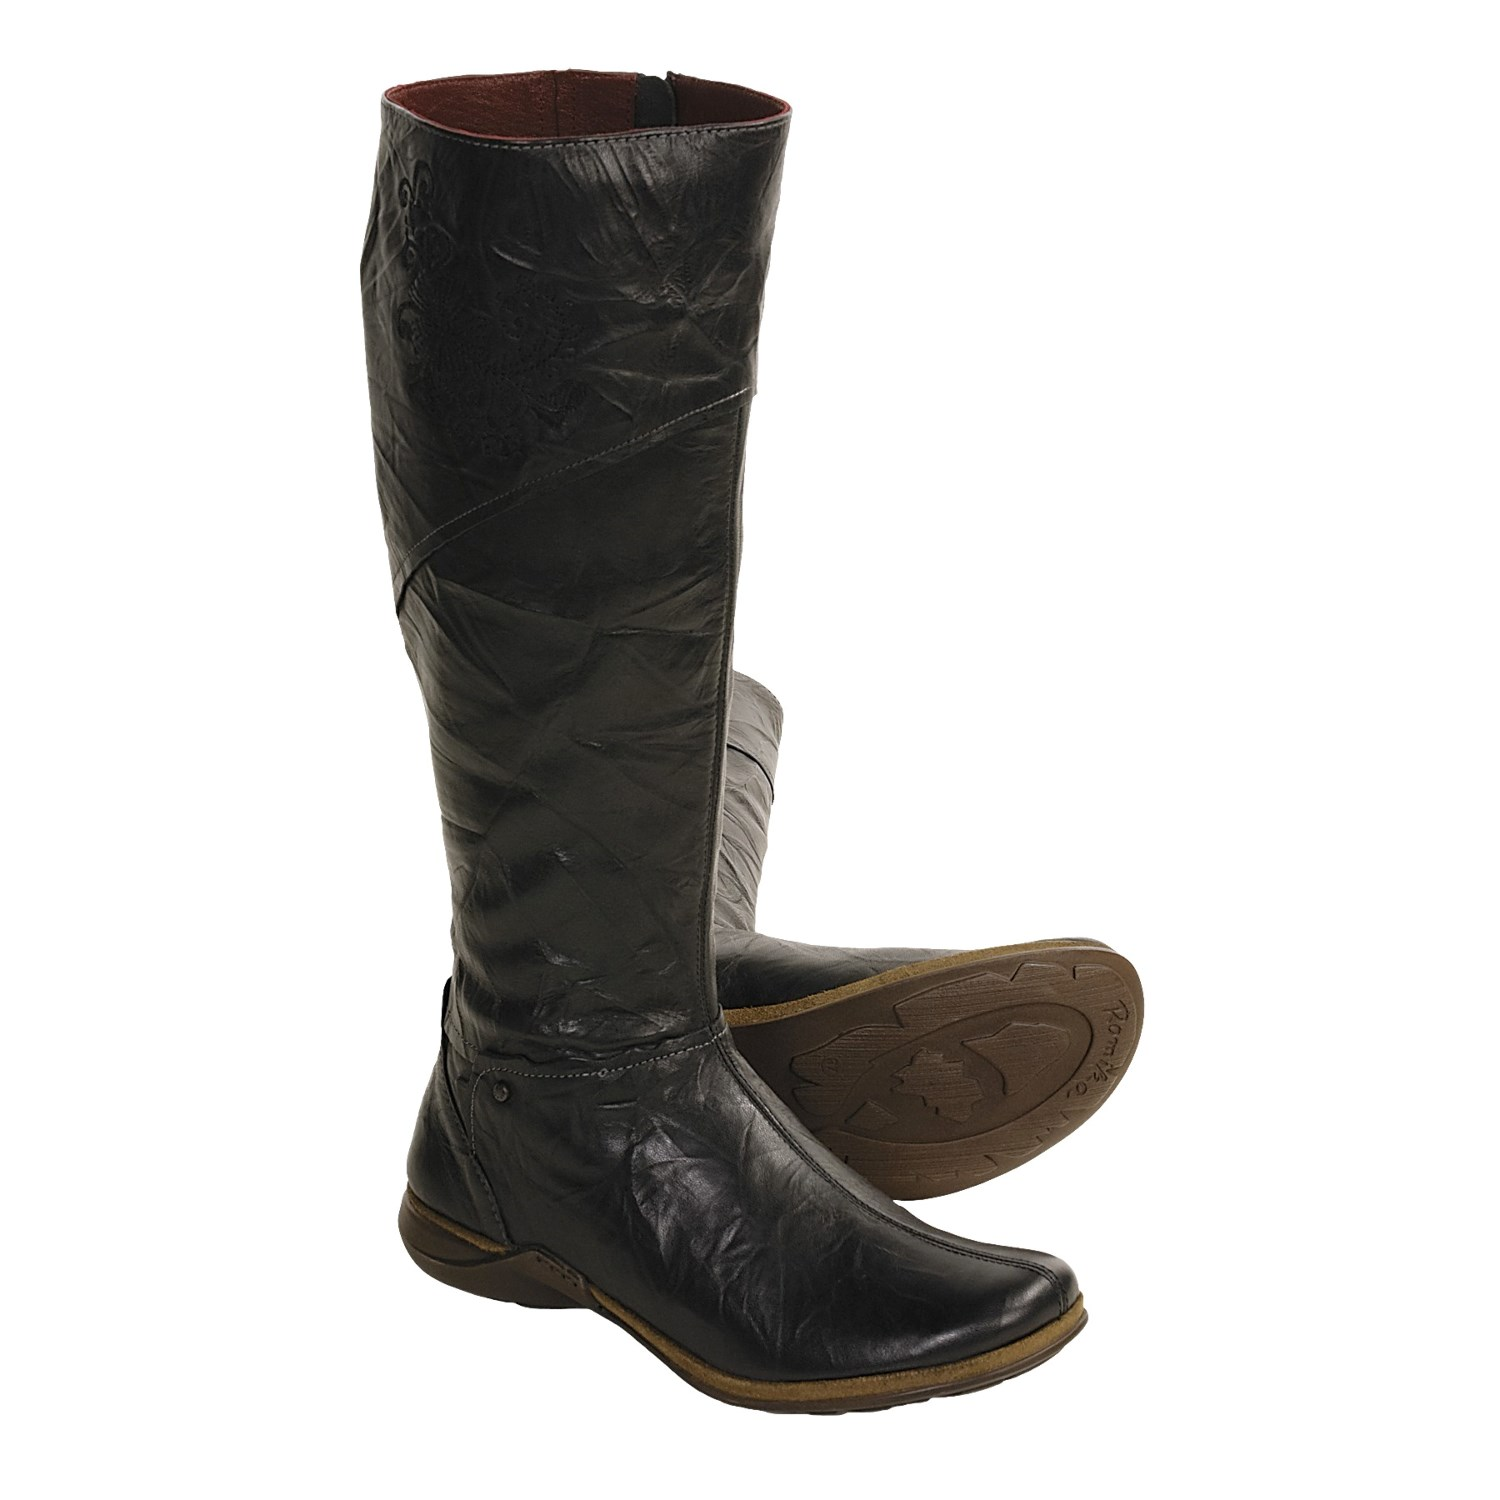 Womens Tall Dress Boots Find yourself a comfortable, stylish, supportive tall boot from our collection of Women's Tall Dress Boots. We have styles that will pair perfectly with anything from casual skinny jeans to comfortable leggings to business attire, and with name brands such as BareTraps, Steve Madden and Unlisted, you will be sure to find.